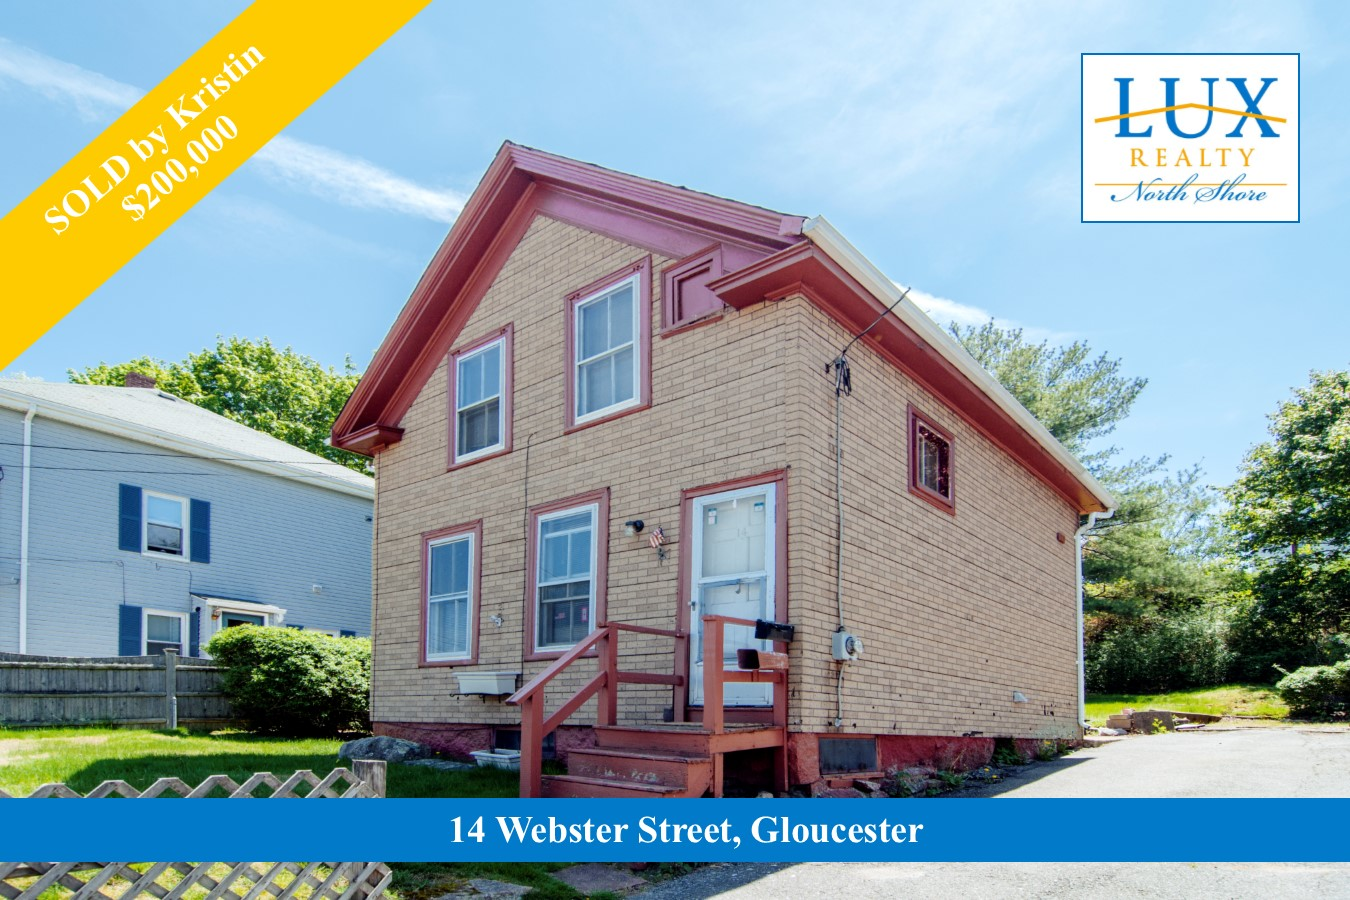 gloucester homes for sale